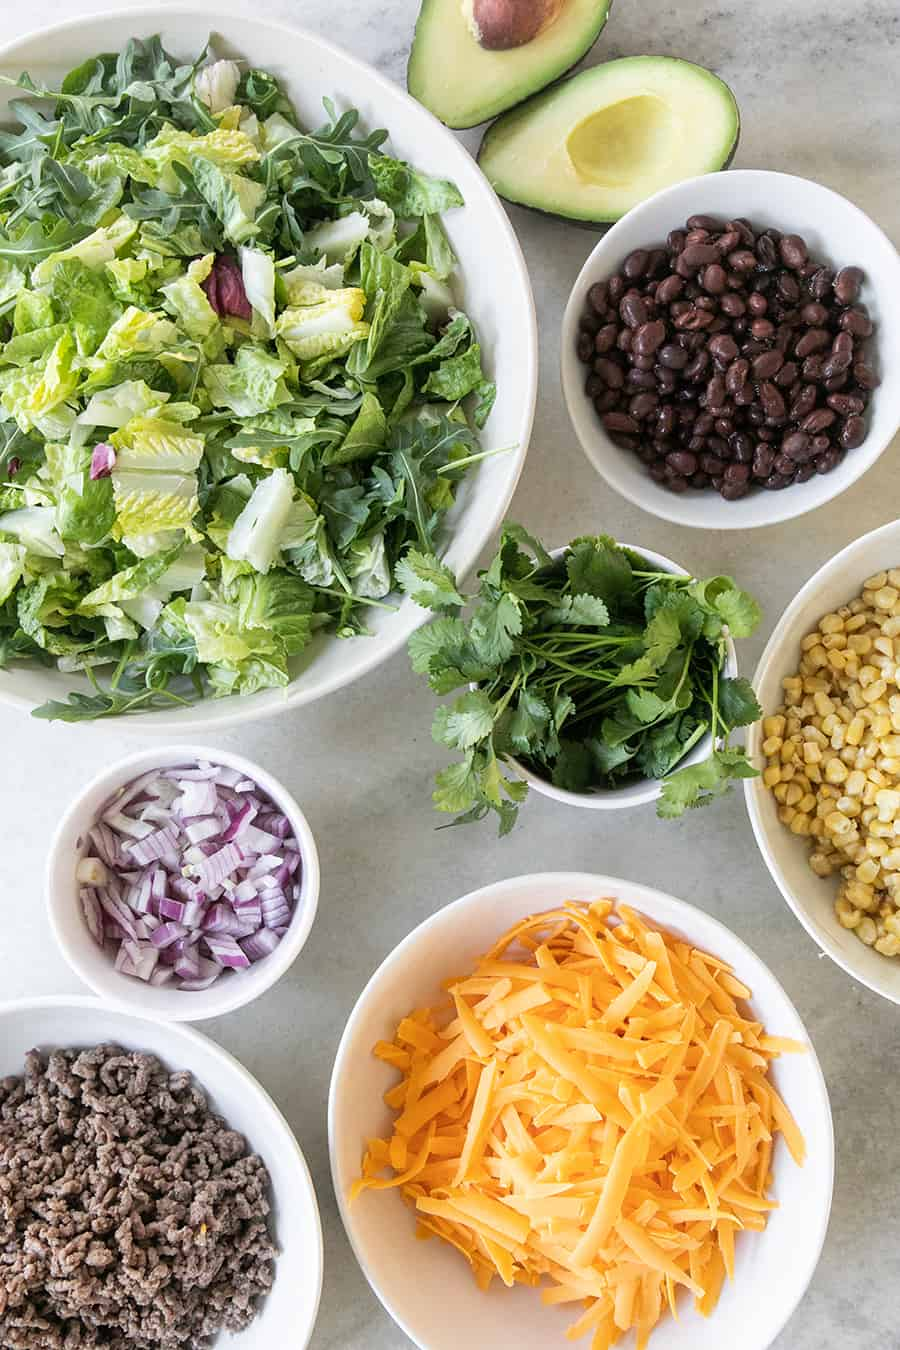 Ingredients for a taco salad, lettuce, onions, cheese, beans, ground beef, corn.